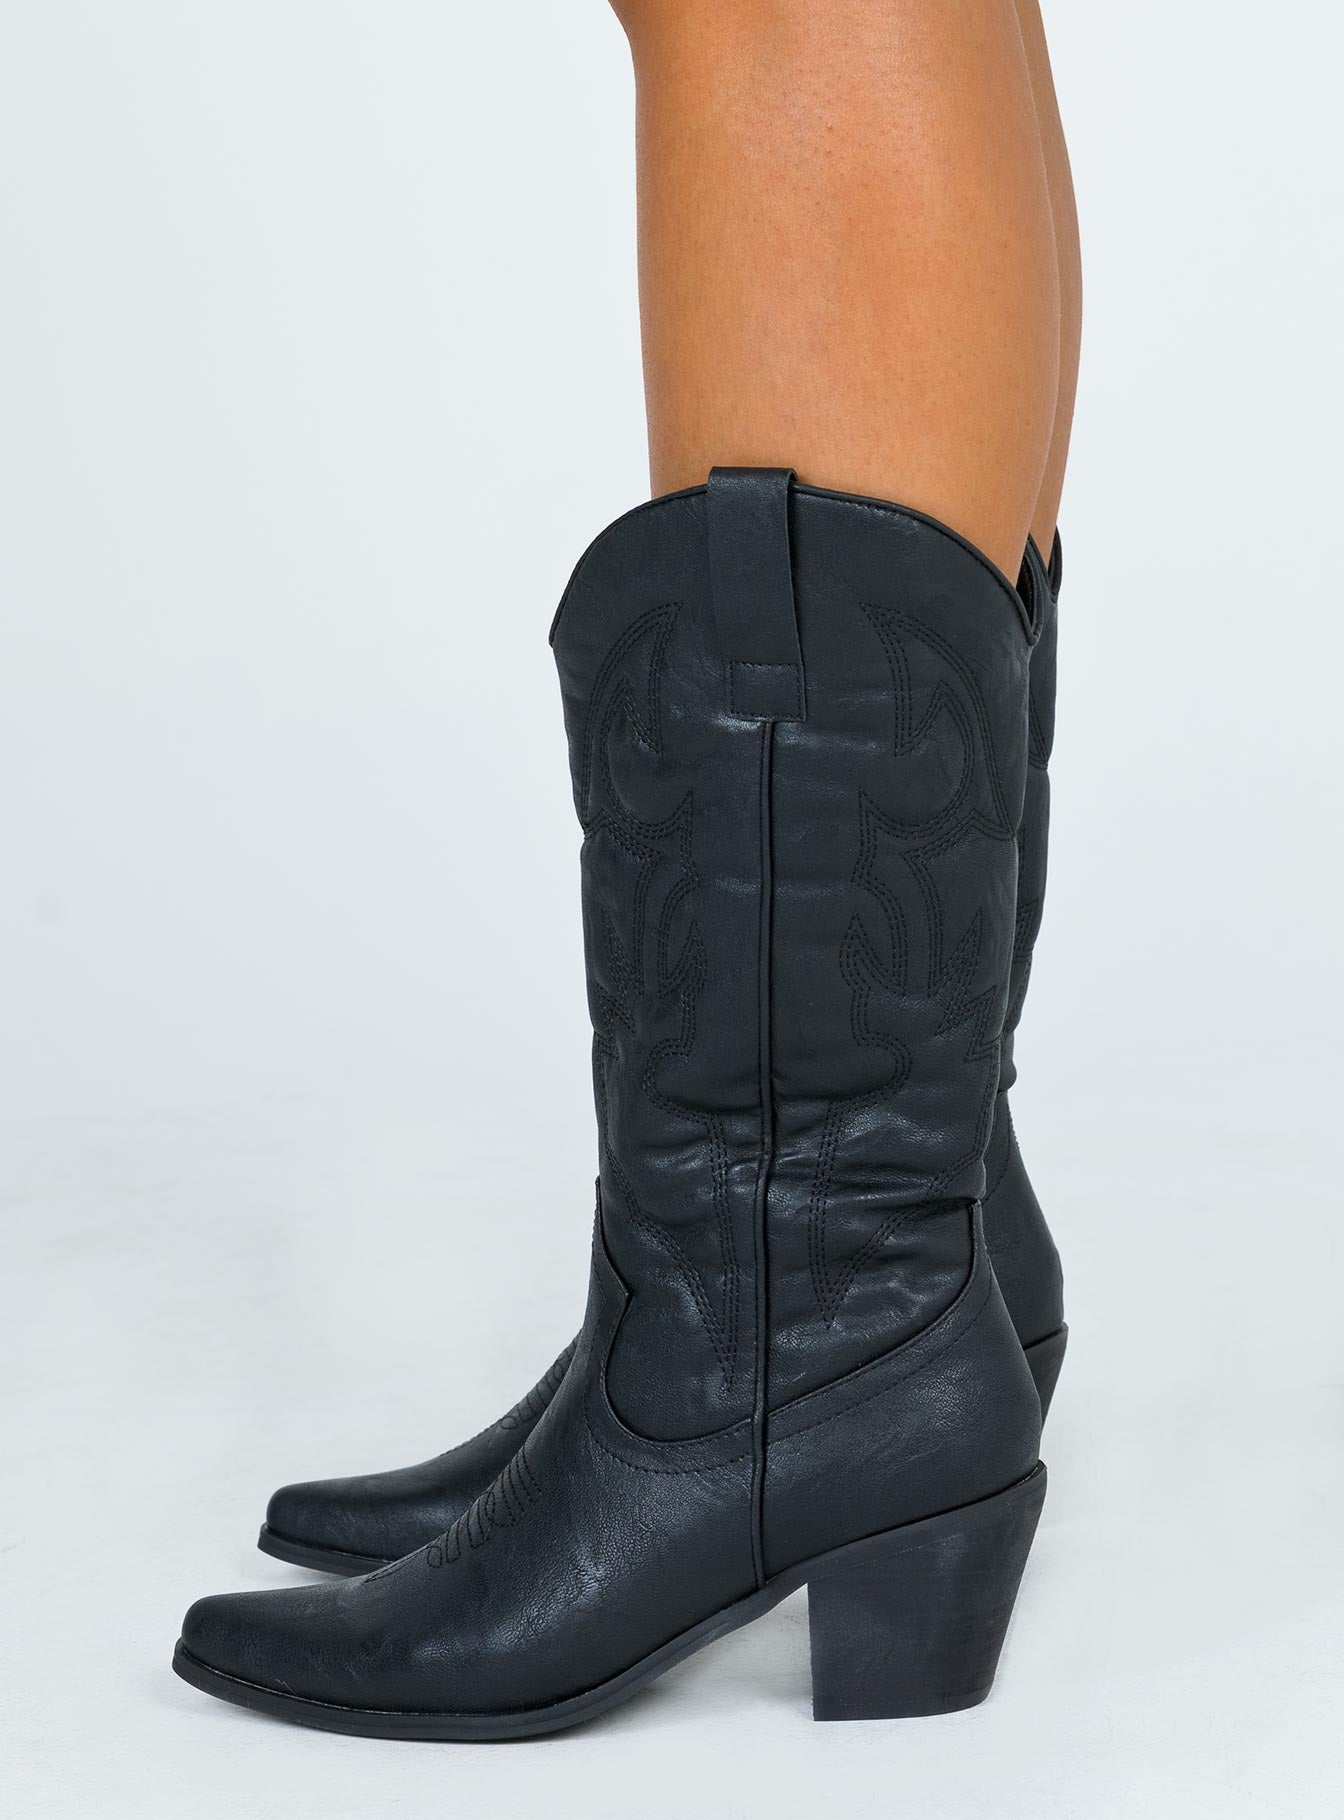 Therapy Clayton Black Boots